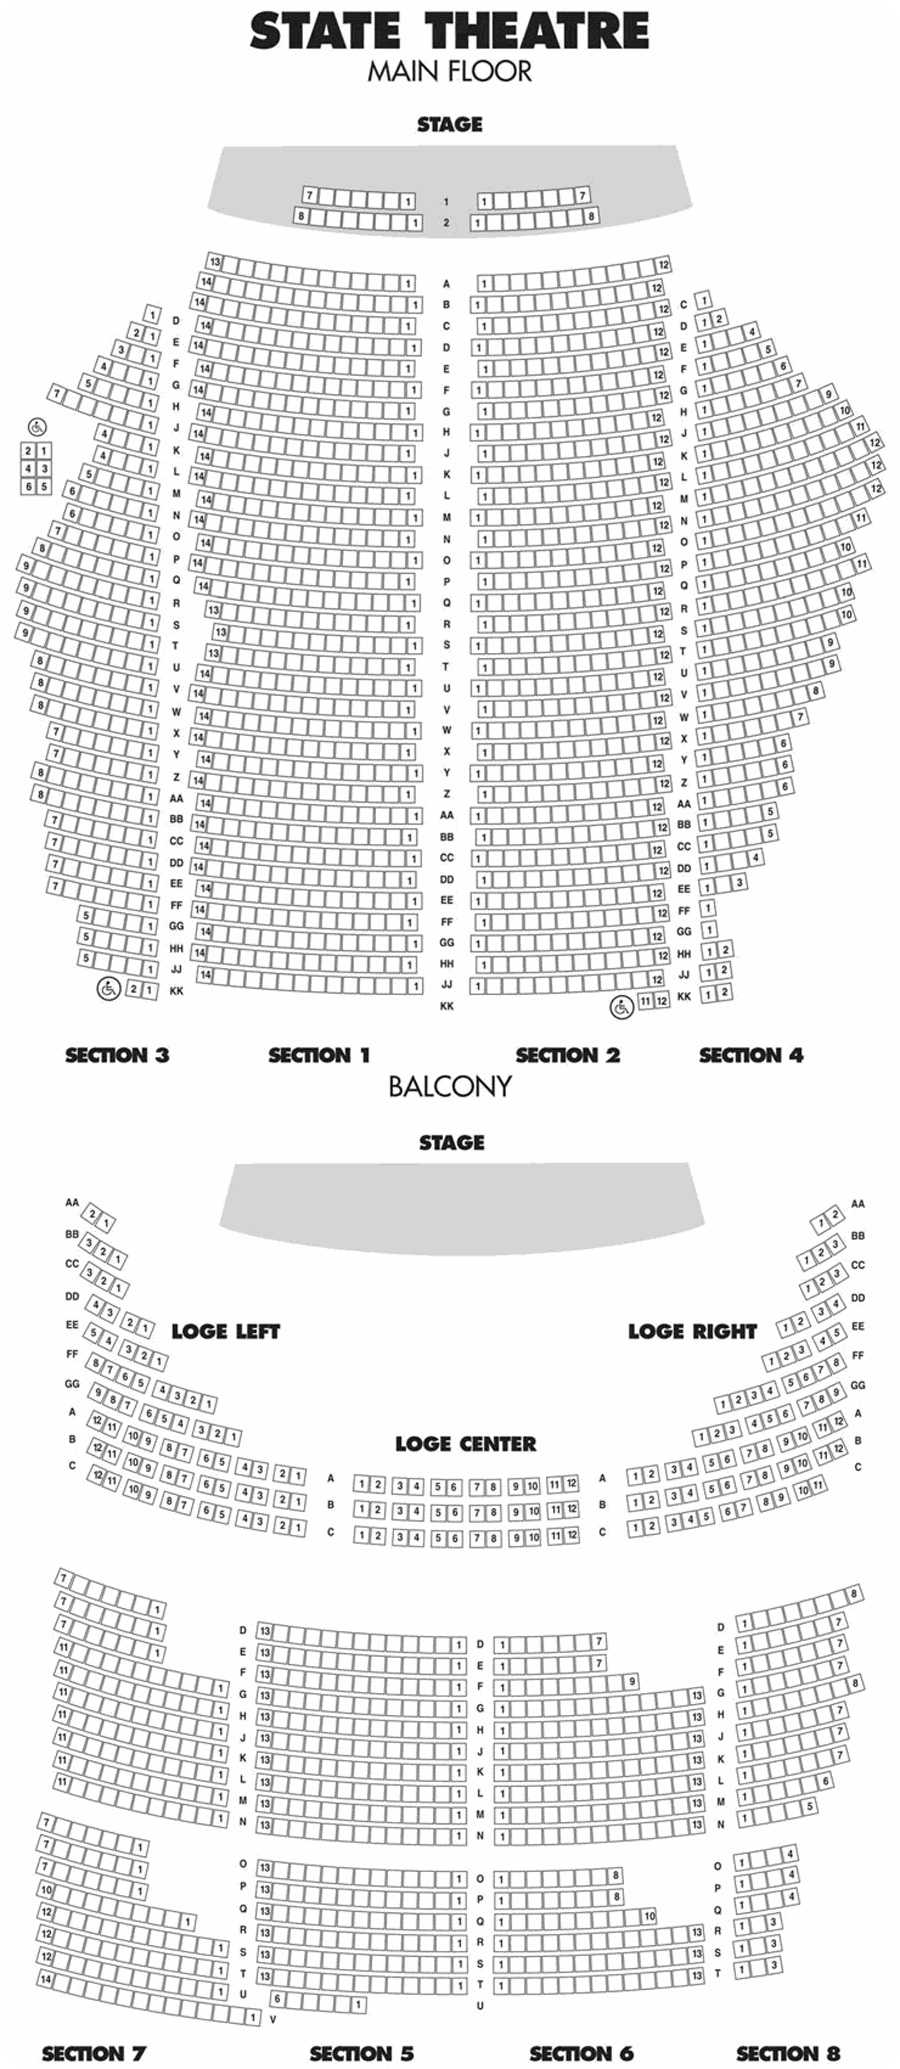 State Theatre Seating Chart Shows Curly Playing At The